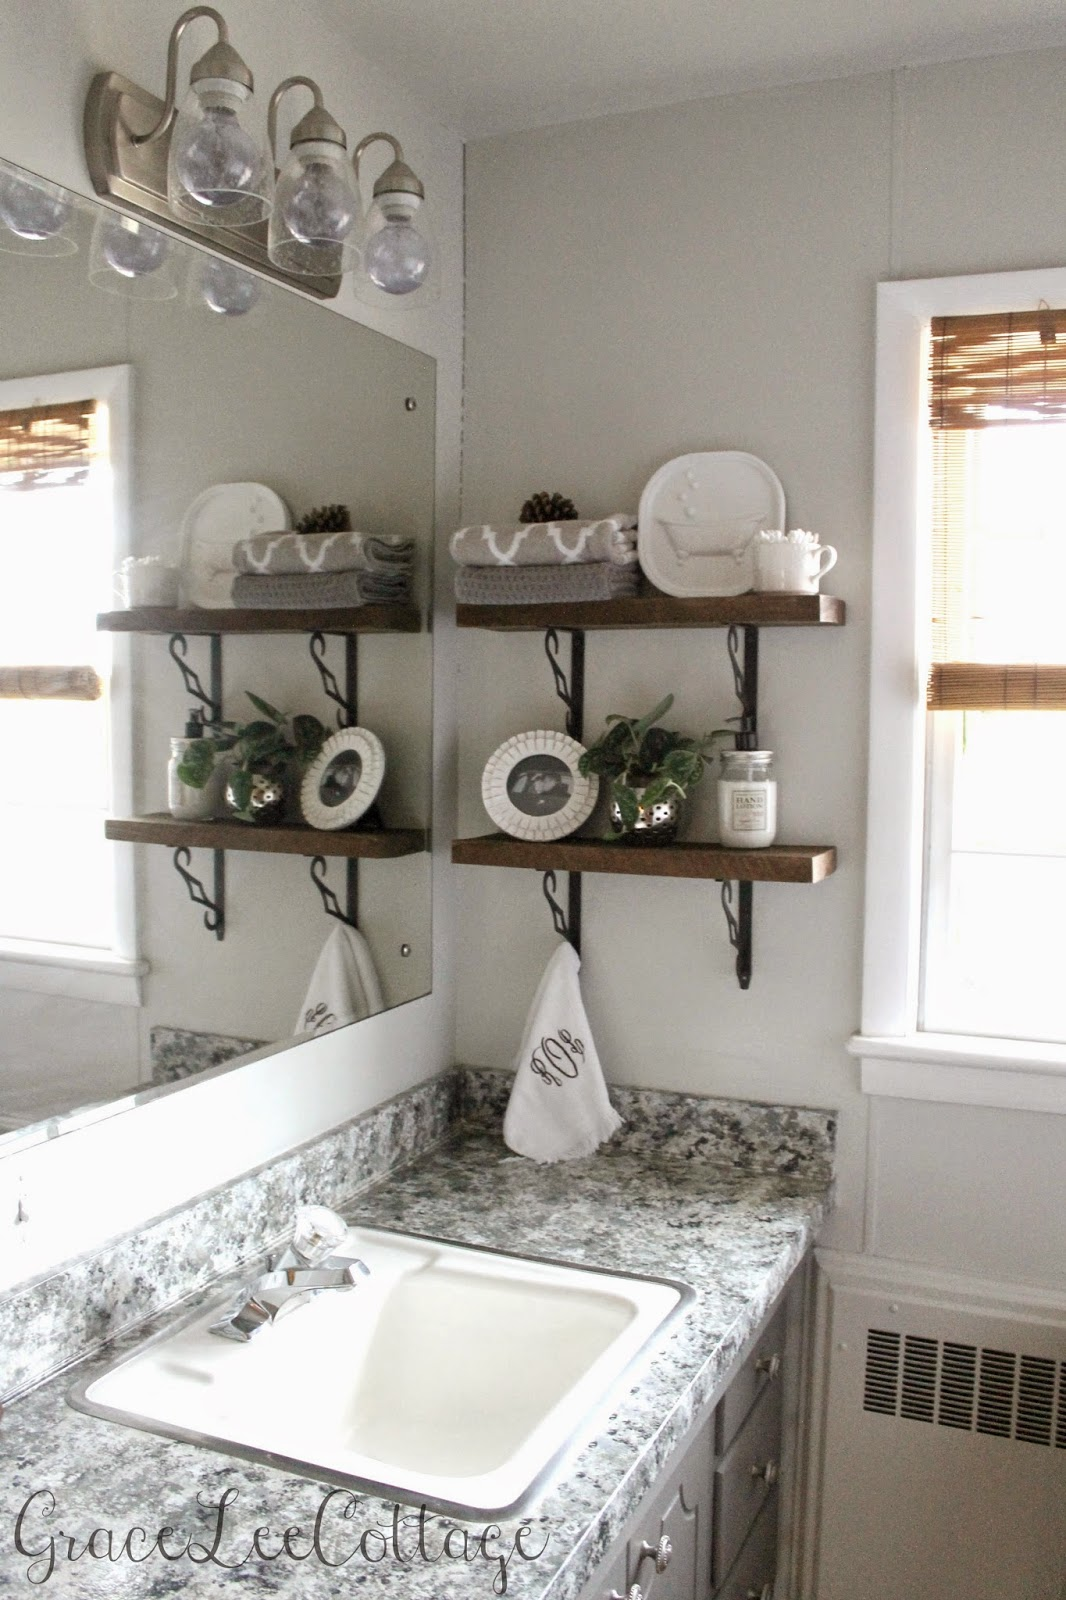 Decorative Rustic Storage Projects For Your Bathroom: Grace Lee Cottage: DIY Rustic Bathroom Shelves